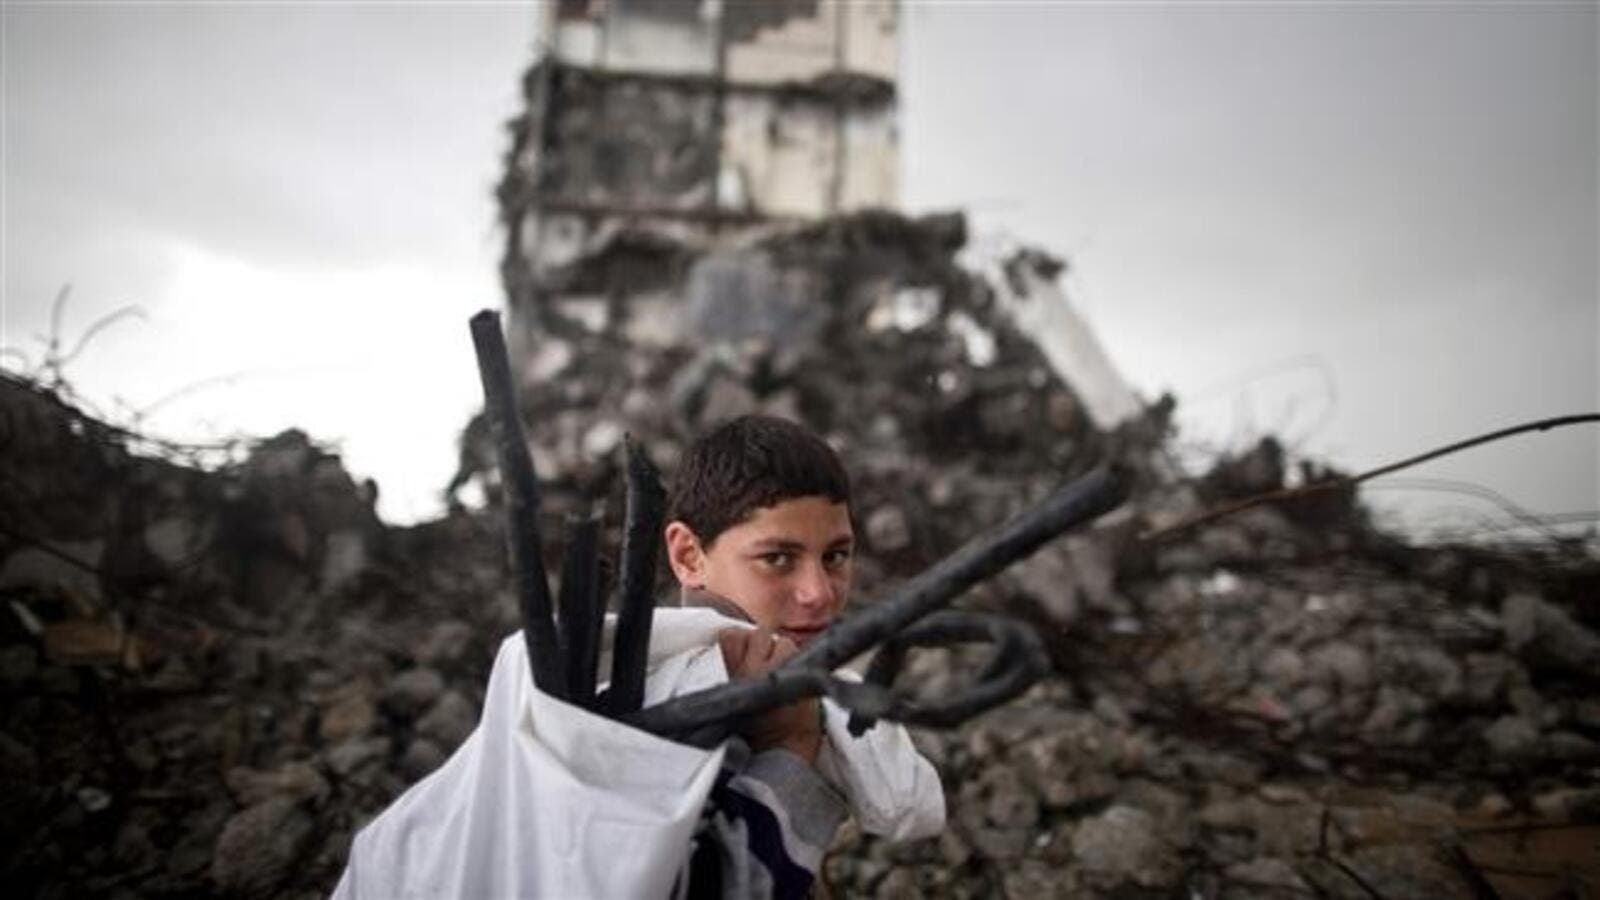 A Palestinian boy walks past a building destroyed in an Israeli airstrike in Beit Hanoun in the northern Gaza Strip, Jan. 24, 2016. (AFP/File)